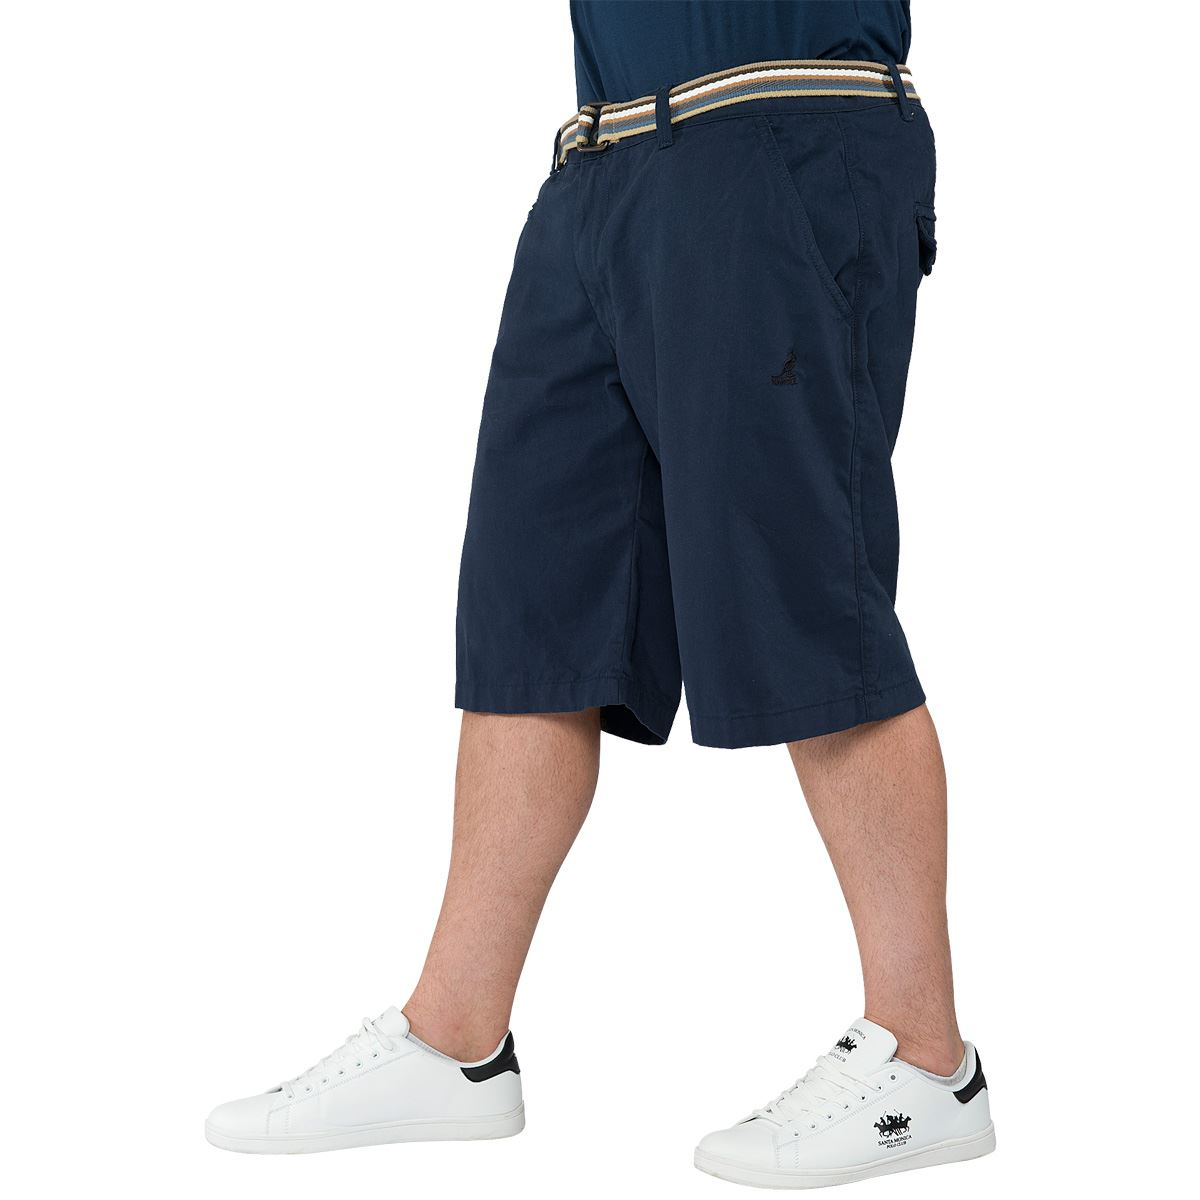 King Size Clothing Kangol Mens Plus King Size Mid Length Shorts Cotton Chino